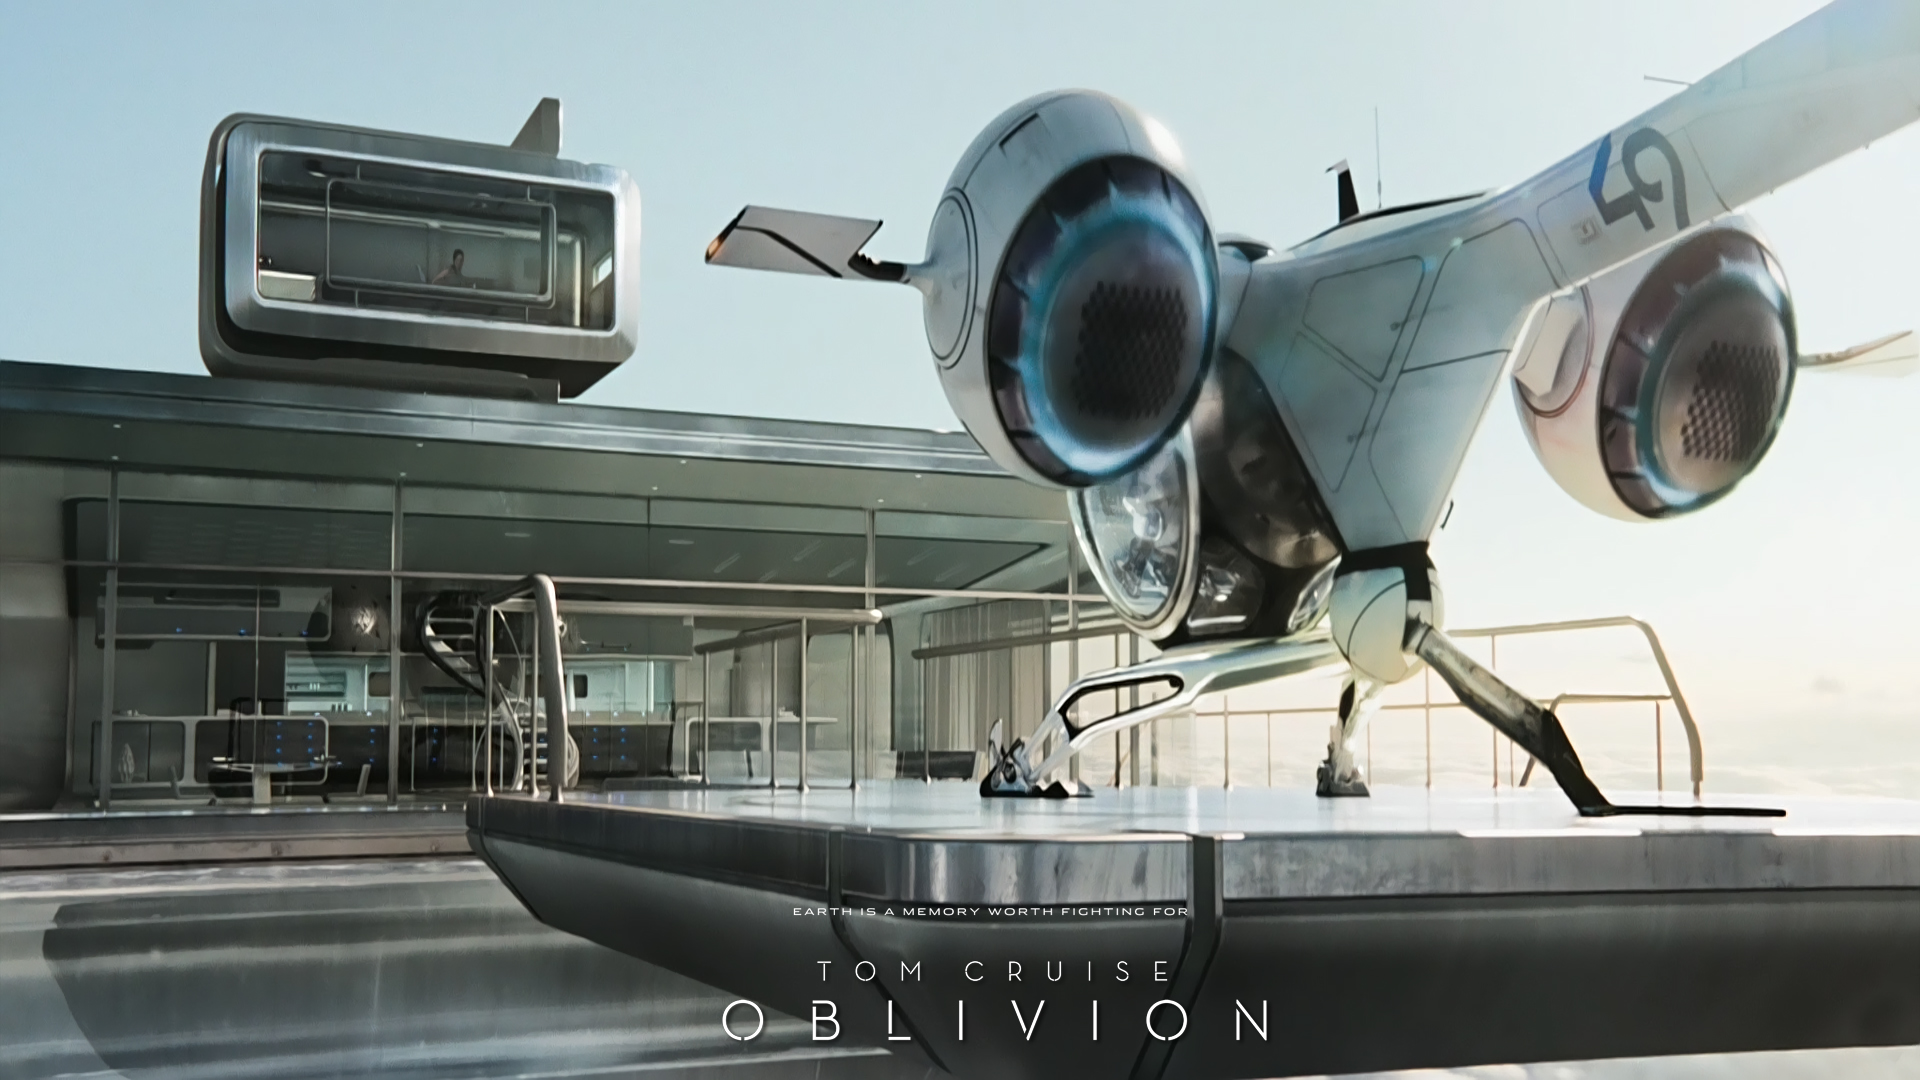 Tom Cruise Oblivion Wallpapers 2